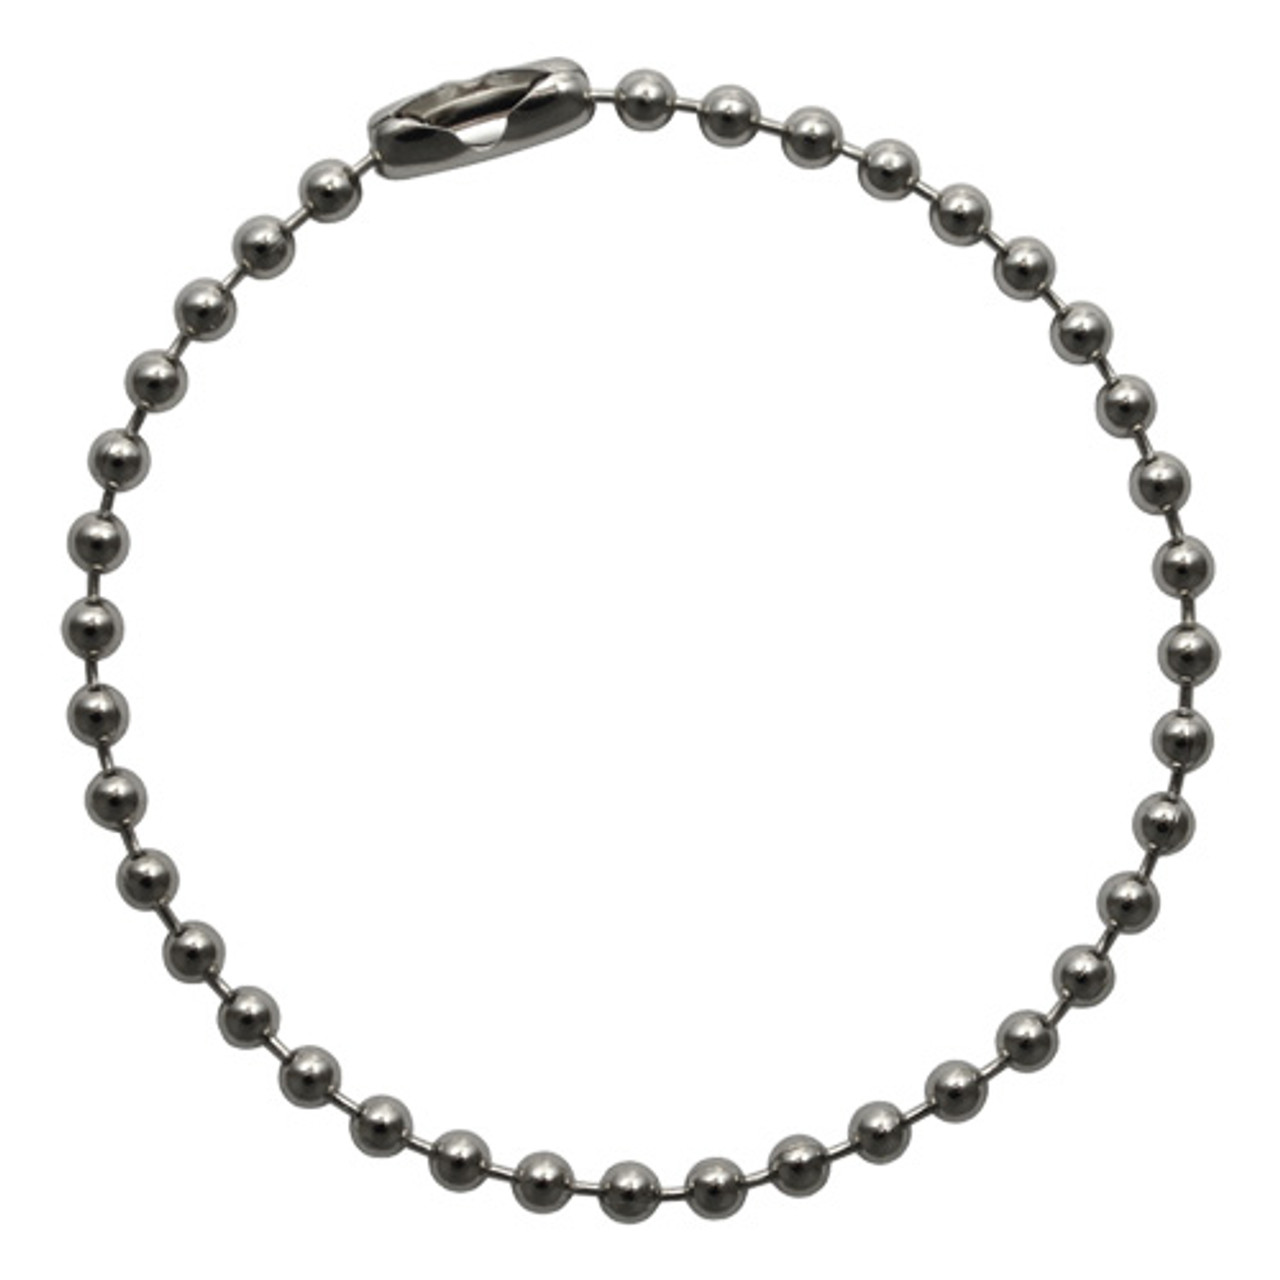 Single #3(2.4mm diameter) stainelss steel ball chain key chains. Great value.